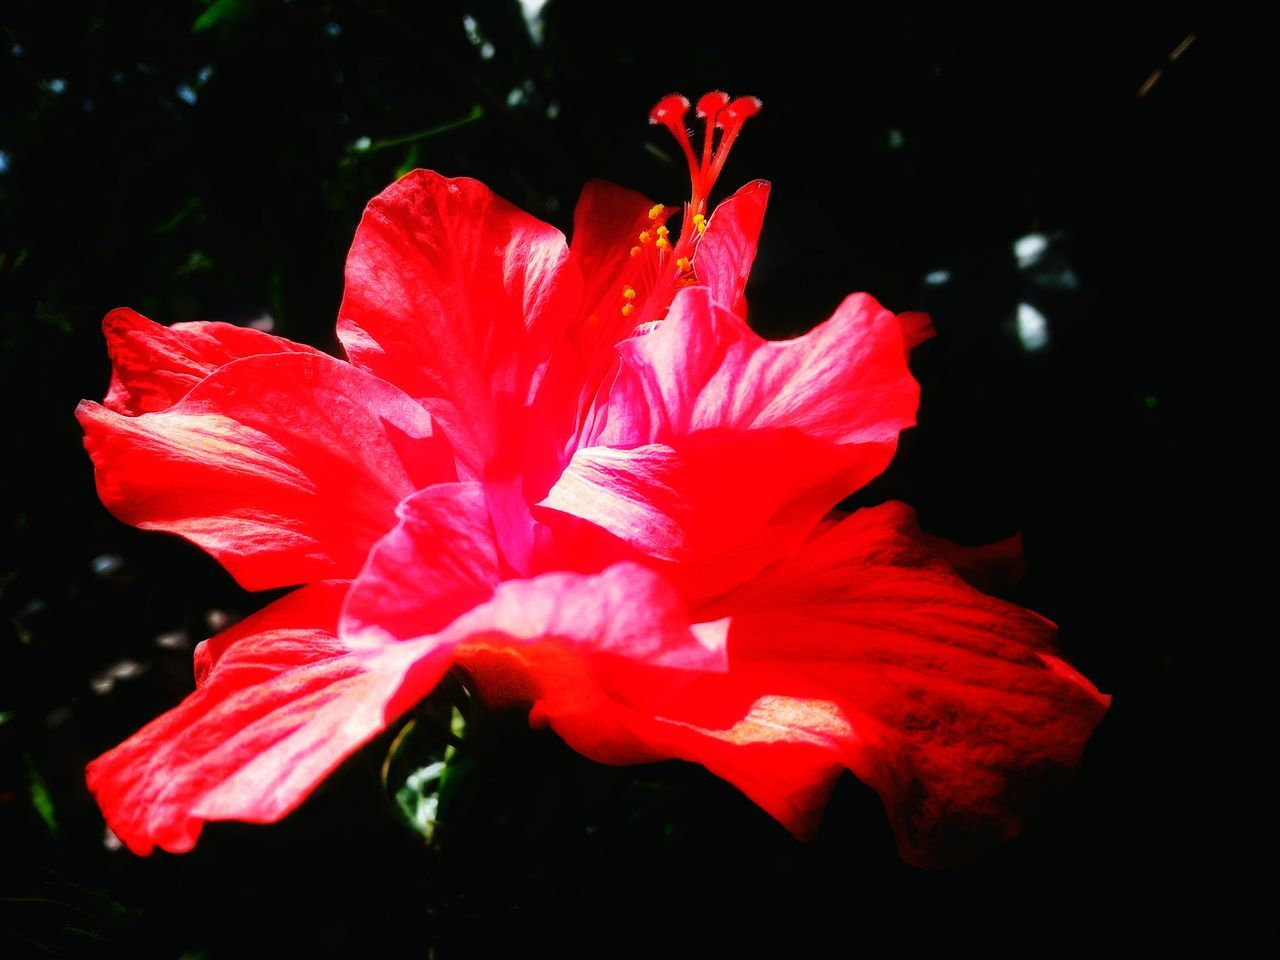 Red Fragility Growth Petal Nature Close-up Plant Flower Flower Head No People Outdoors Freshness Bokehlicious Tranquility Original Experiences My Point Of View Master Class Getting Inspired Artistic Expression My Unique Style Beauty In Nature Focus On Foreground The Week Of Eyeem Hibiscus 🌺 Hybiscus Beauty